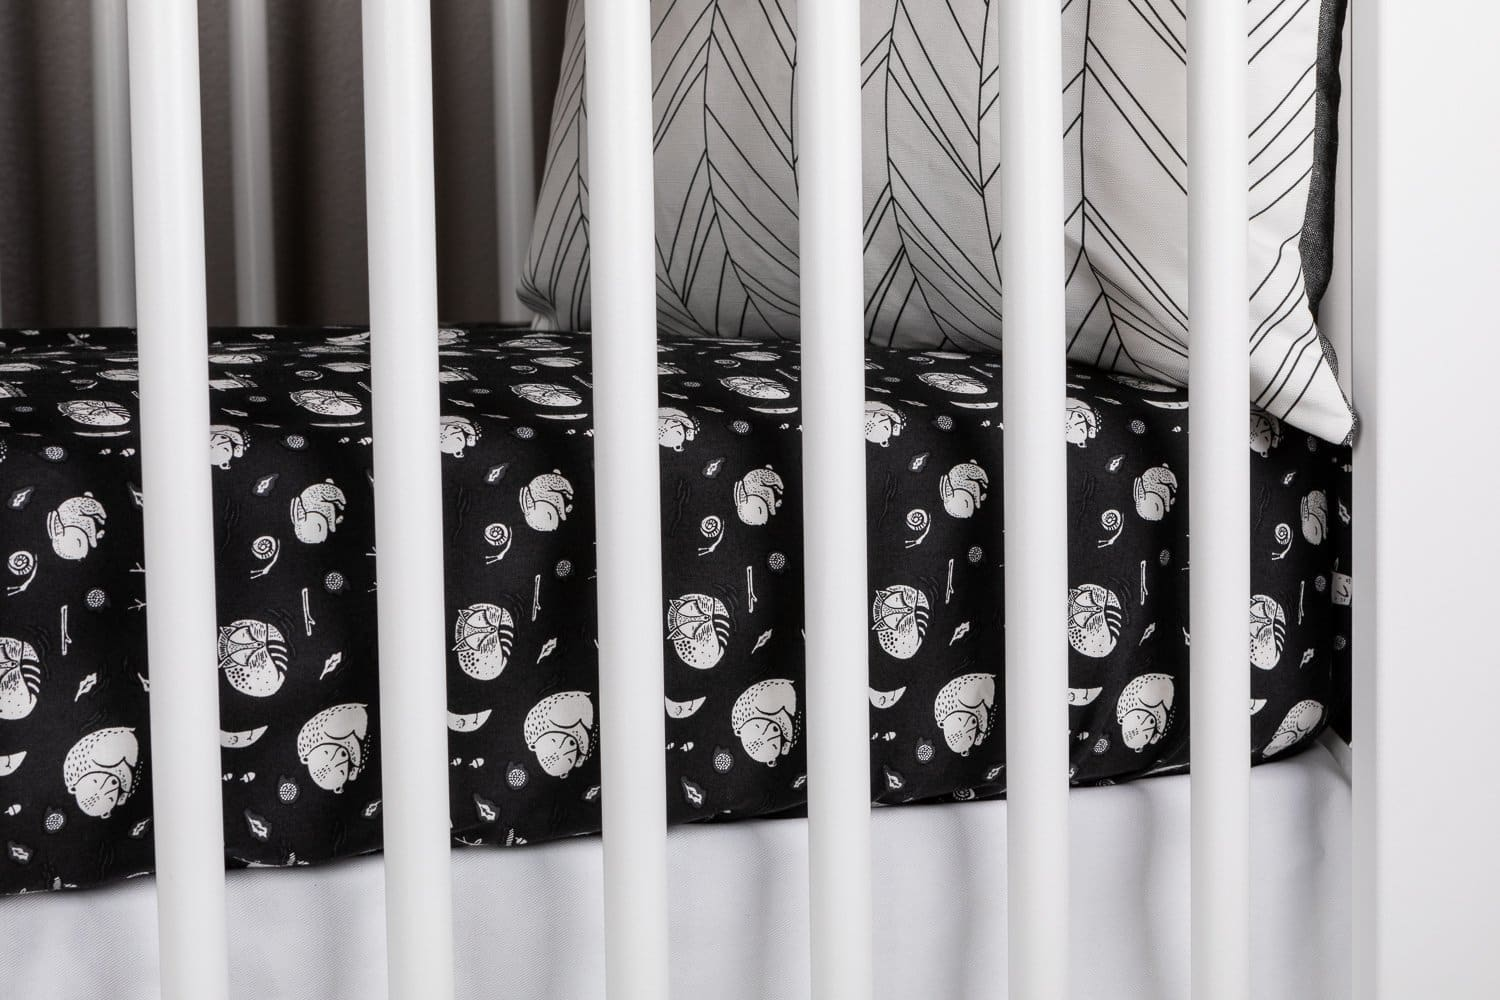 Hibernation Crib Bedding Set in Black and White-Crib Bedding Set-Jack and Jill Boutique